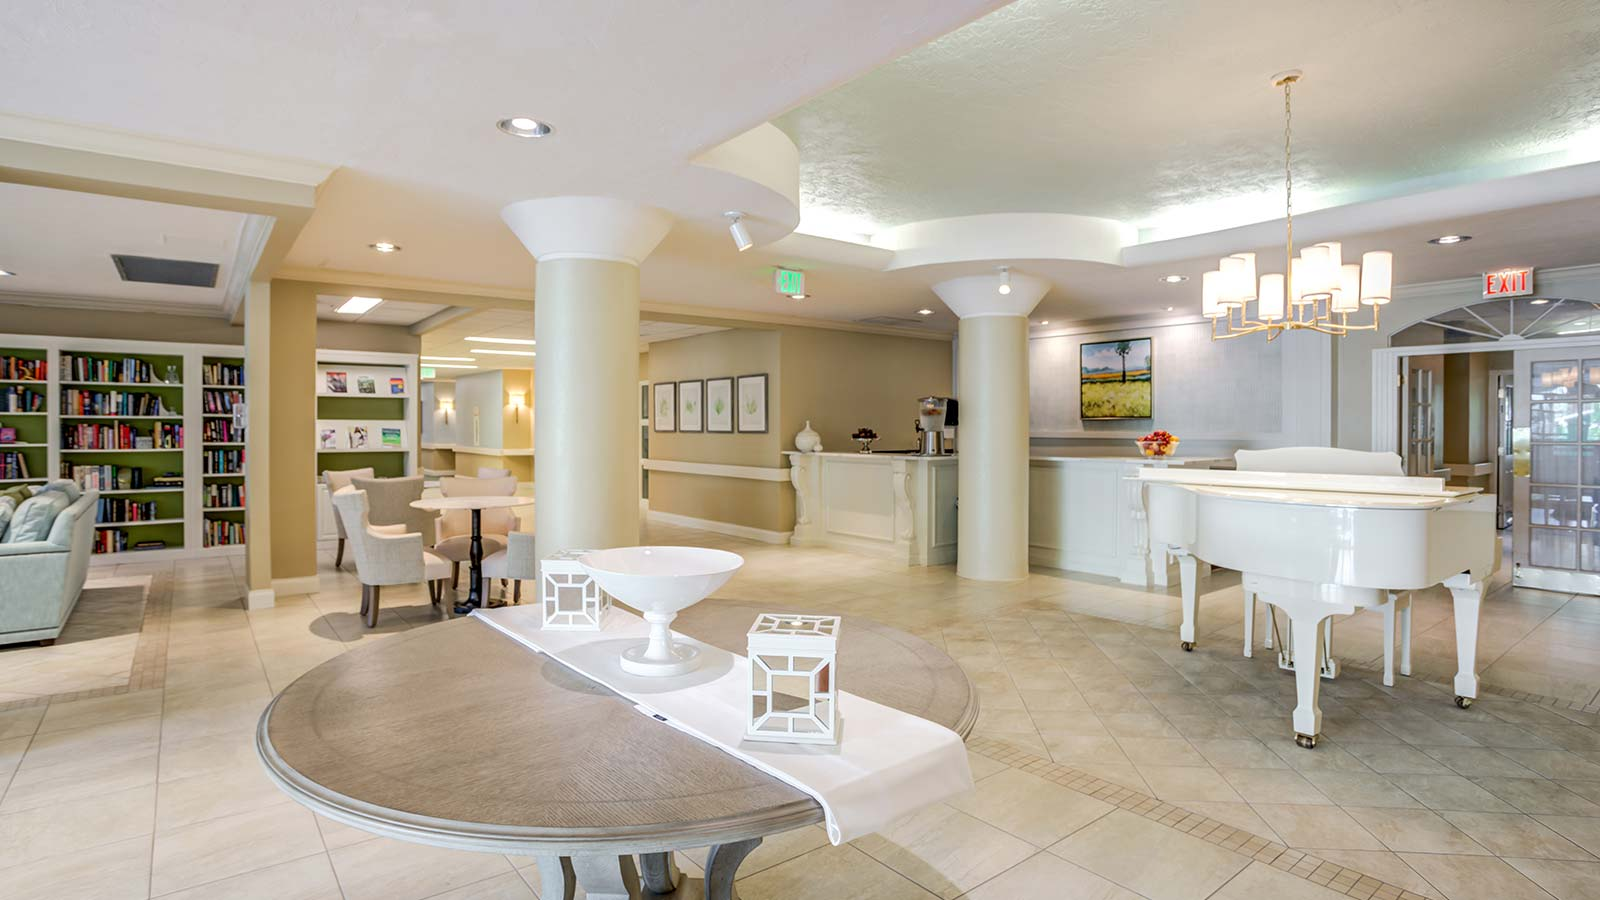 Lobby with grand piano at Heron Club assisted living and memory care in Sarasota Florida